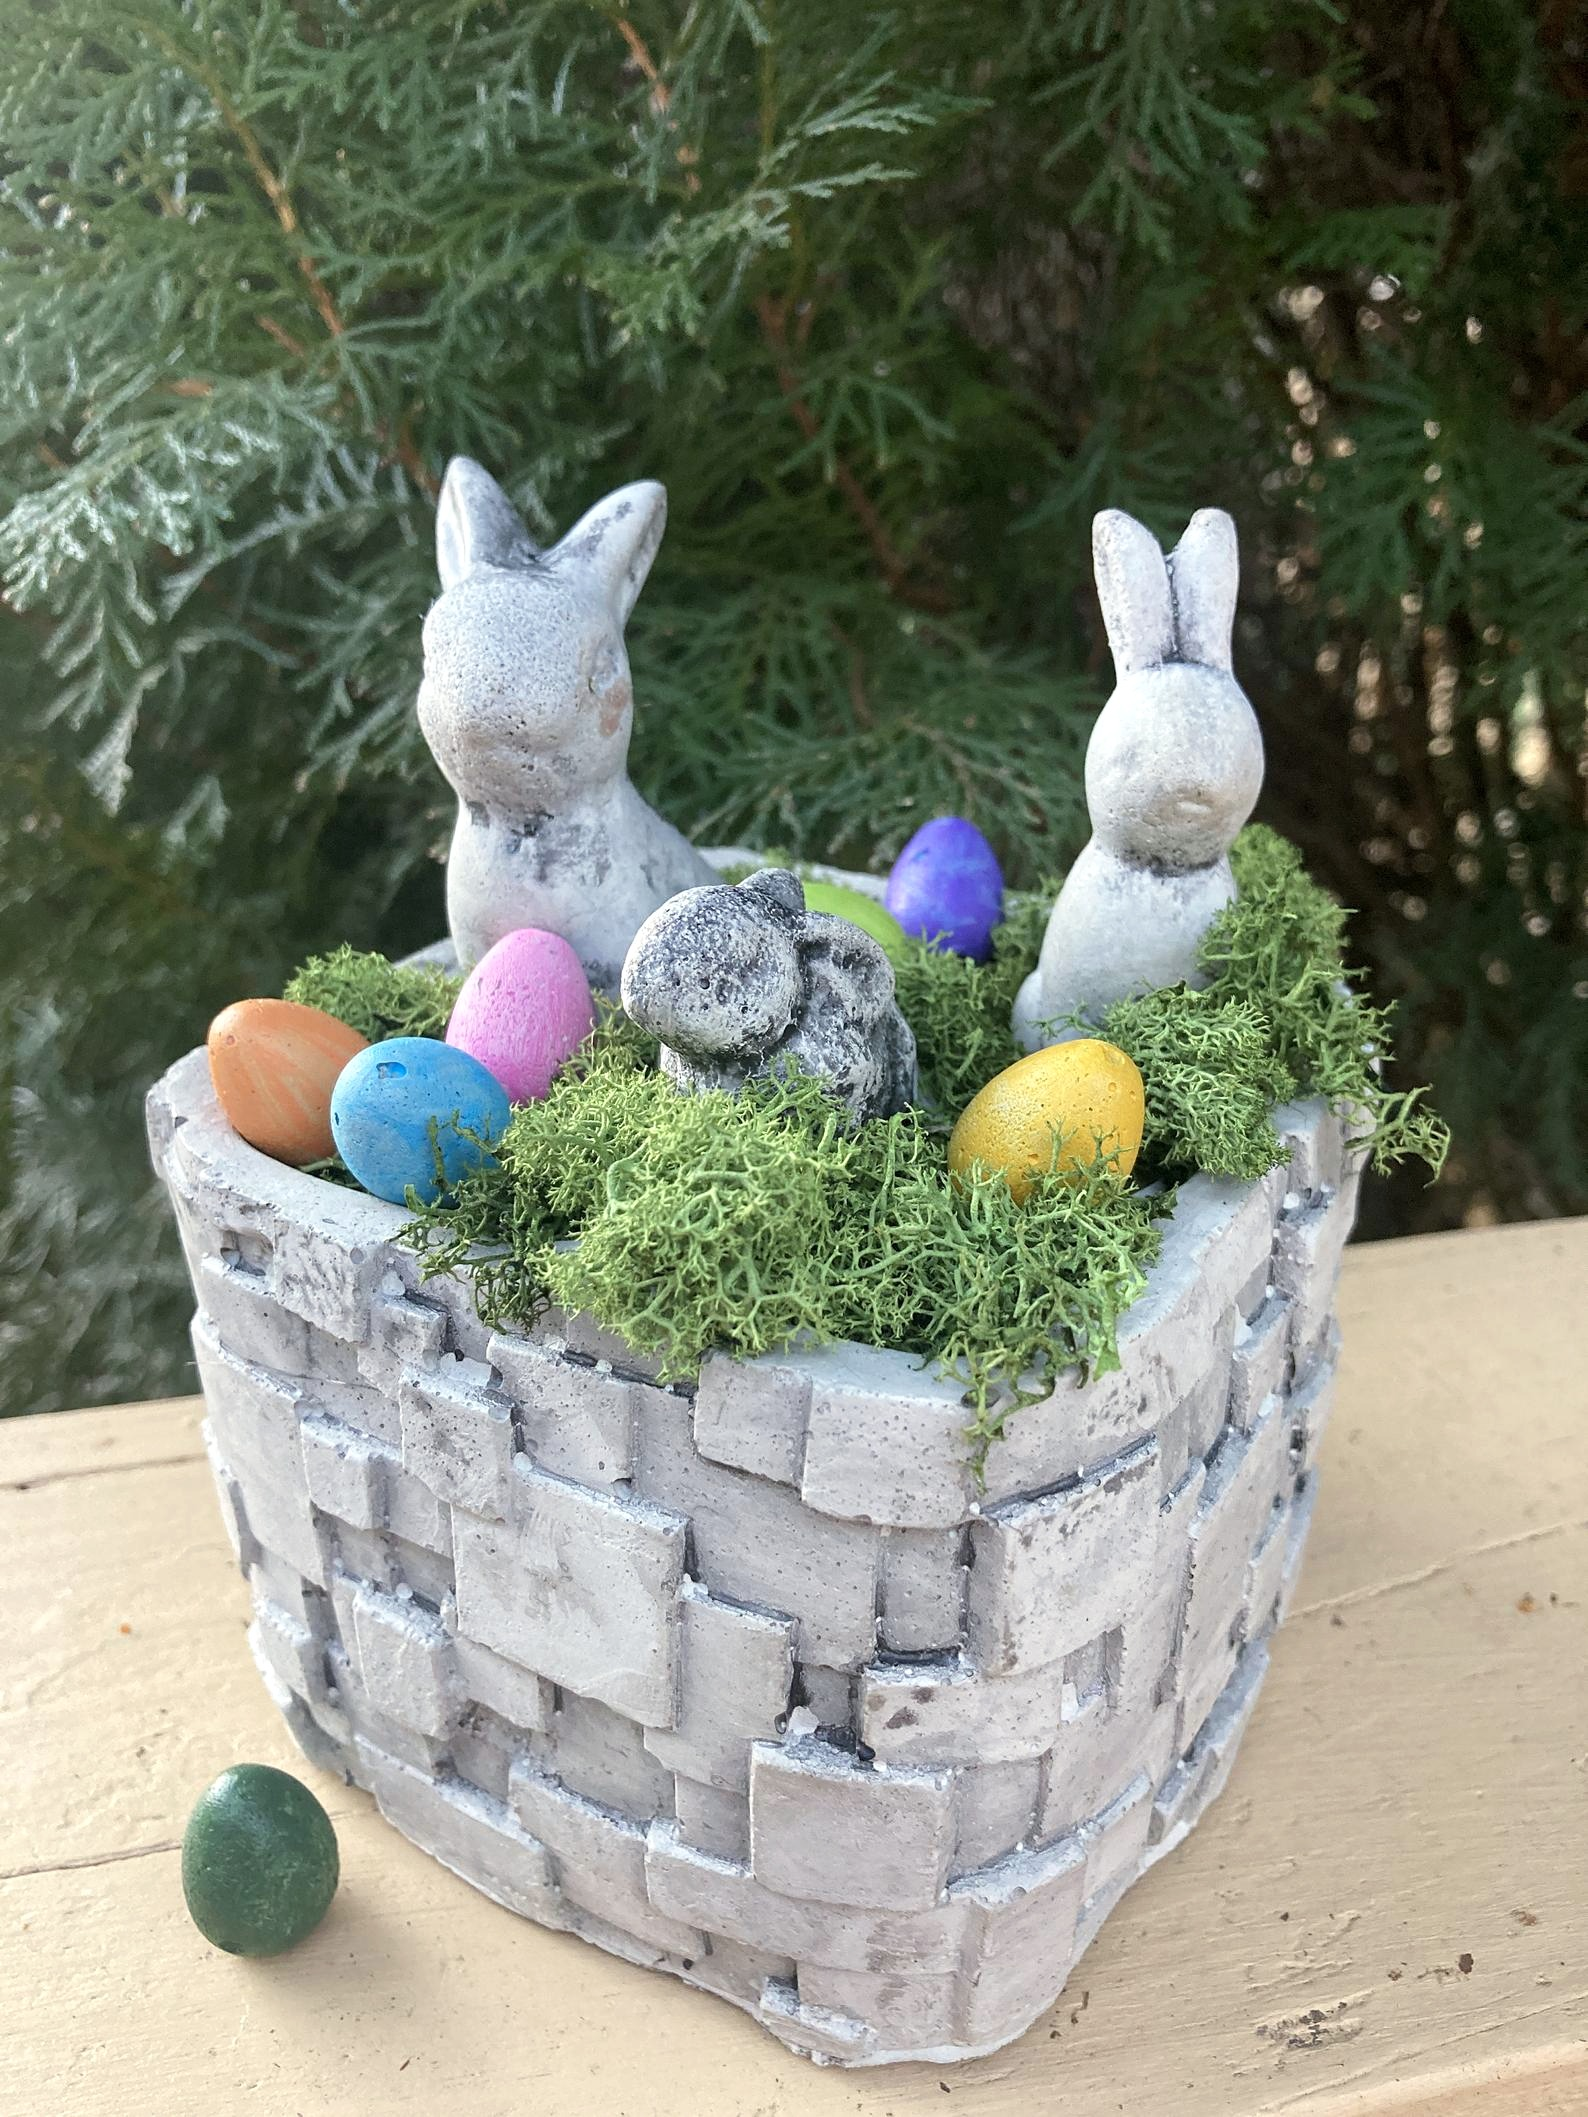 Concrete Wicker Basket Planter with Eggs